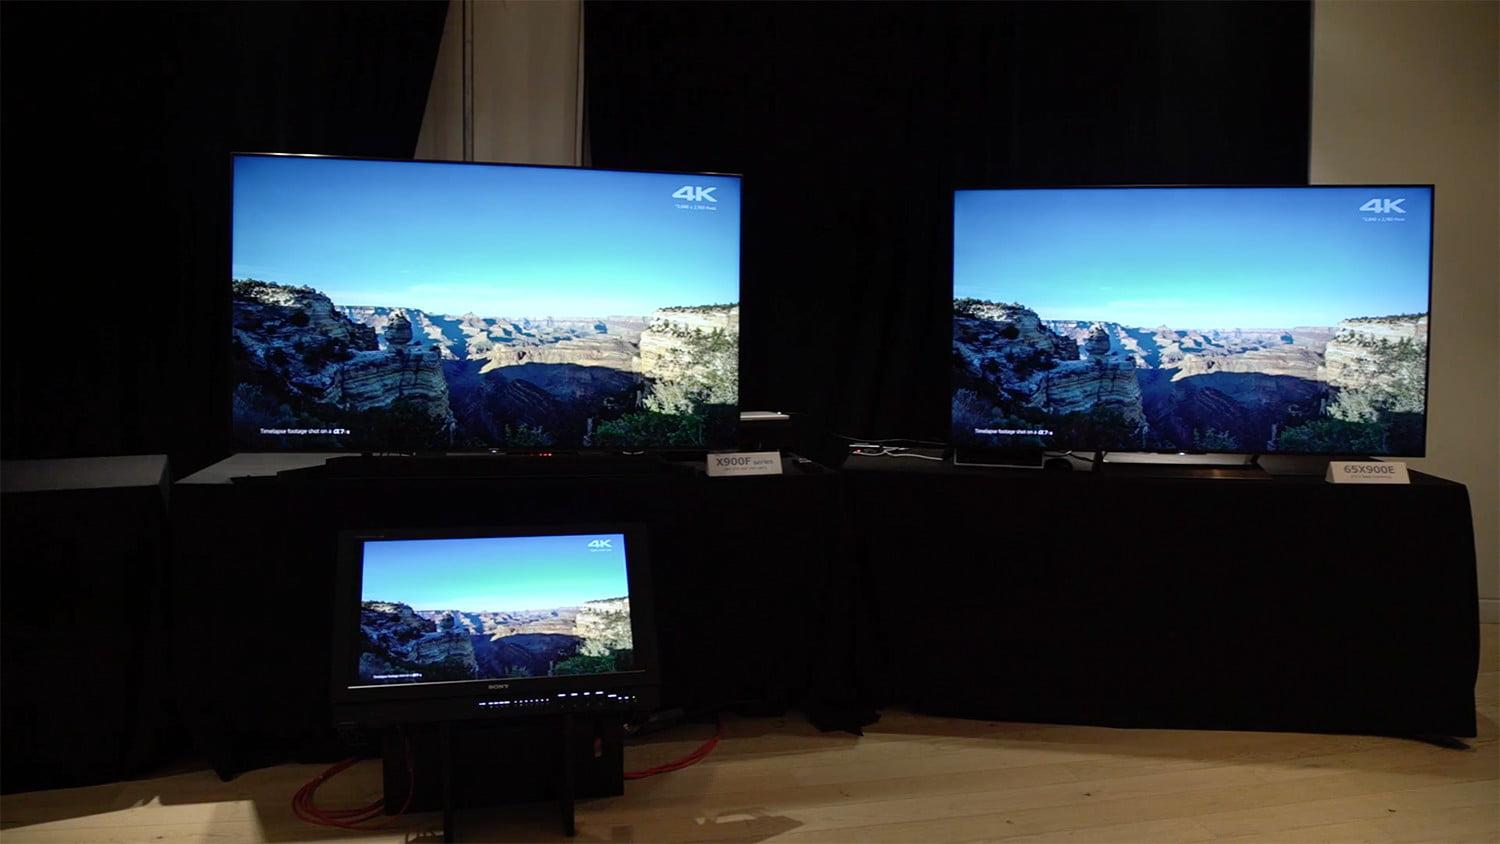 sony x900f 2018 4k hdr tv hands on preview. Black Bedroom Furniture Sets. Home Design Ideas